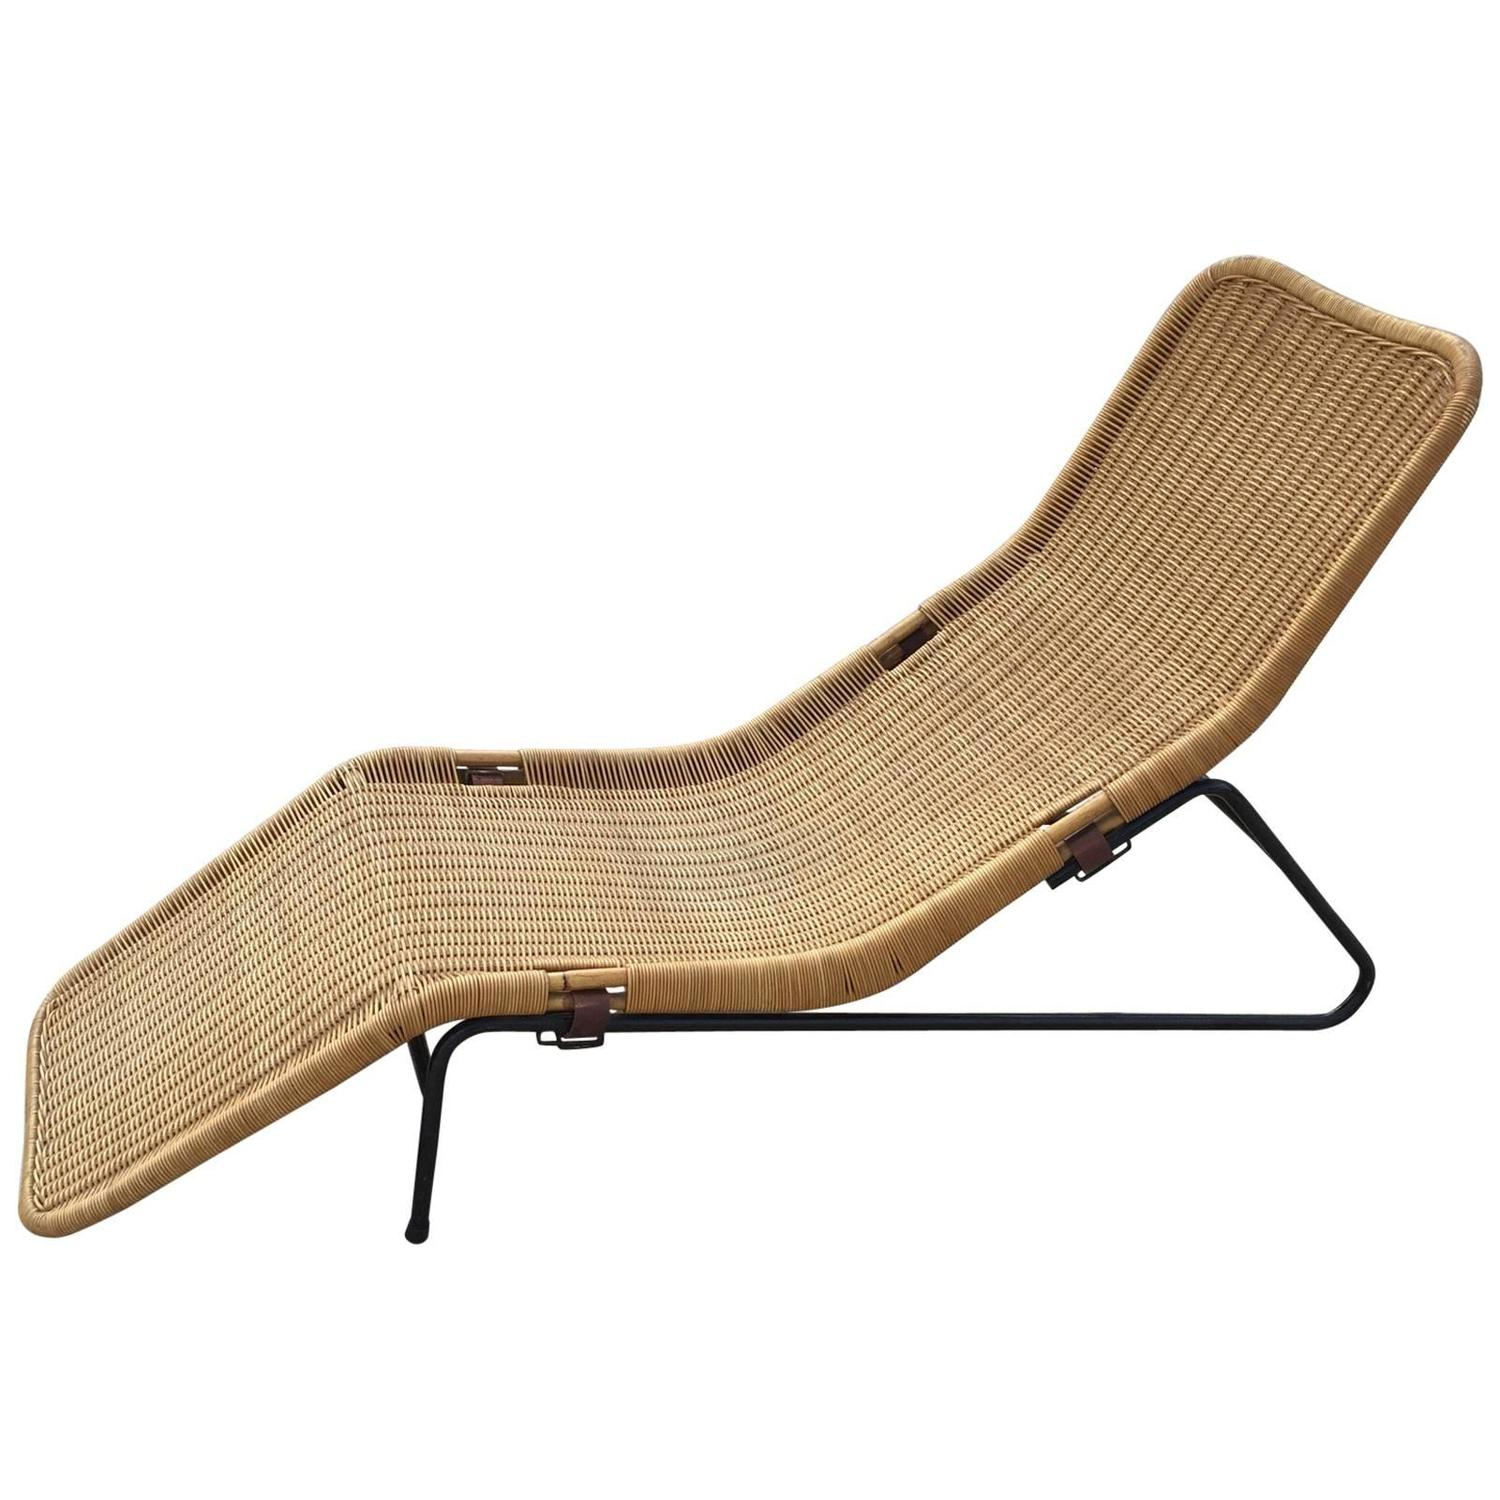 dirk van sliedregt chaise longue in cane for sale at 1stdibs On cane chaise longue